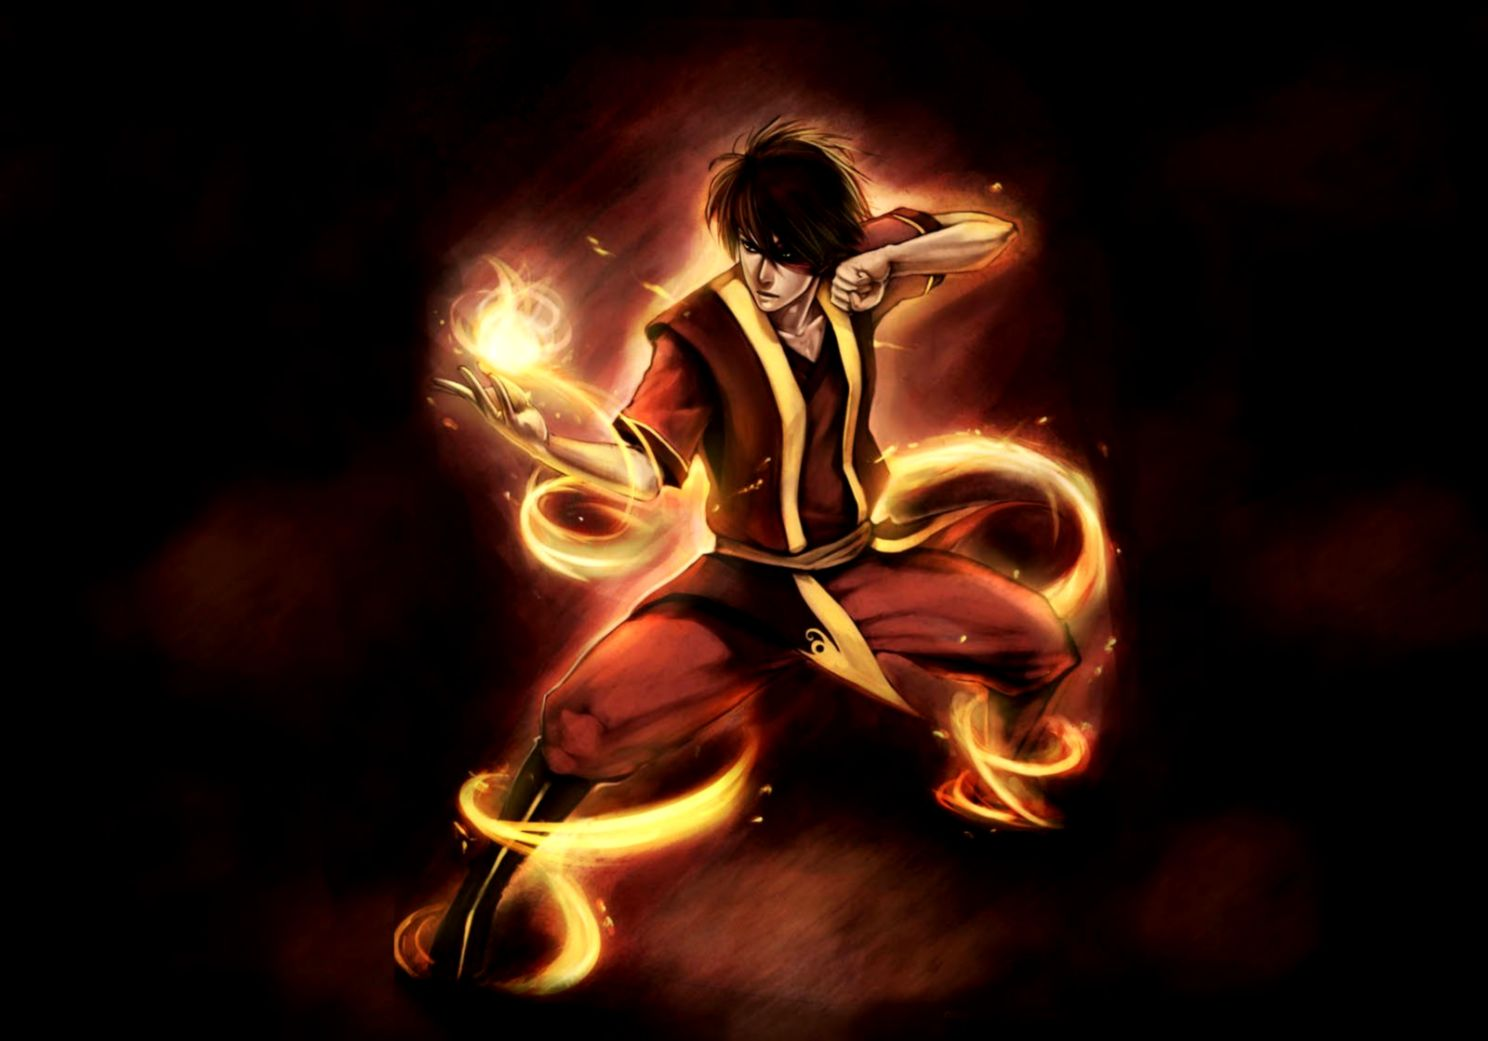 Zendha Avatar The Last Airbender Wallpaper Android